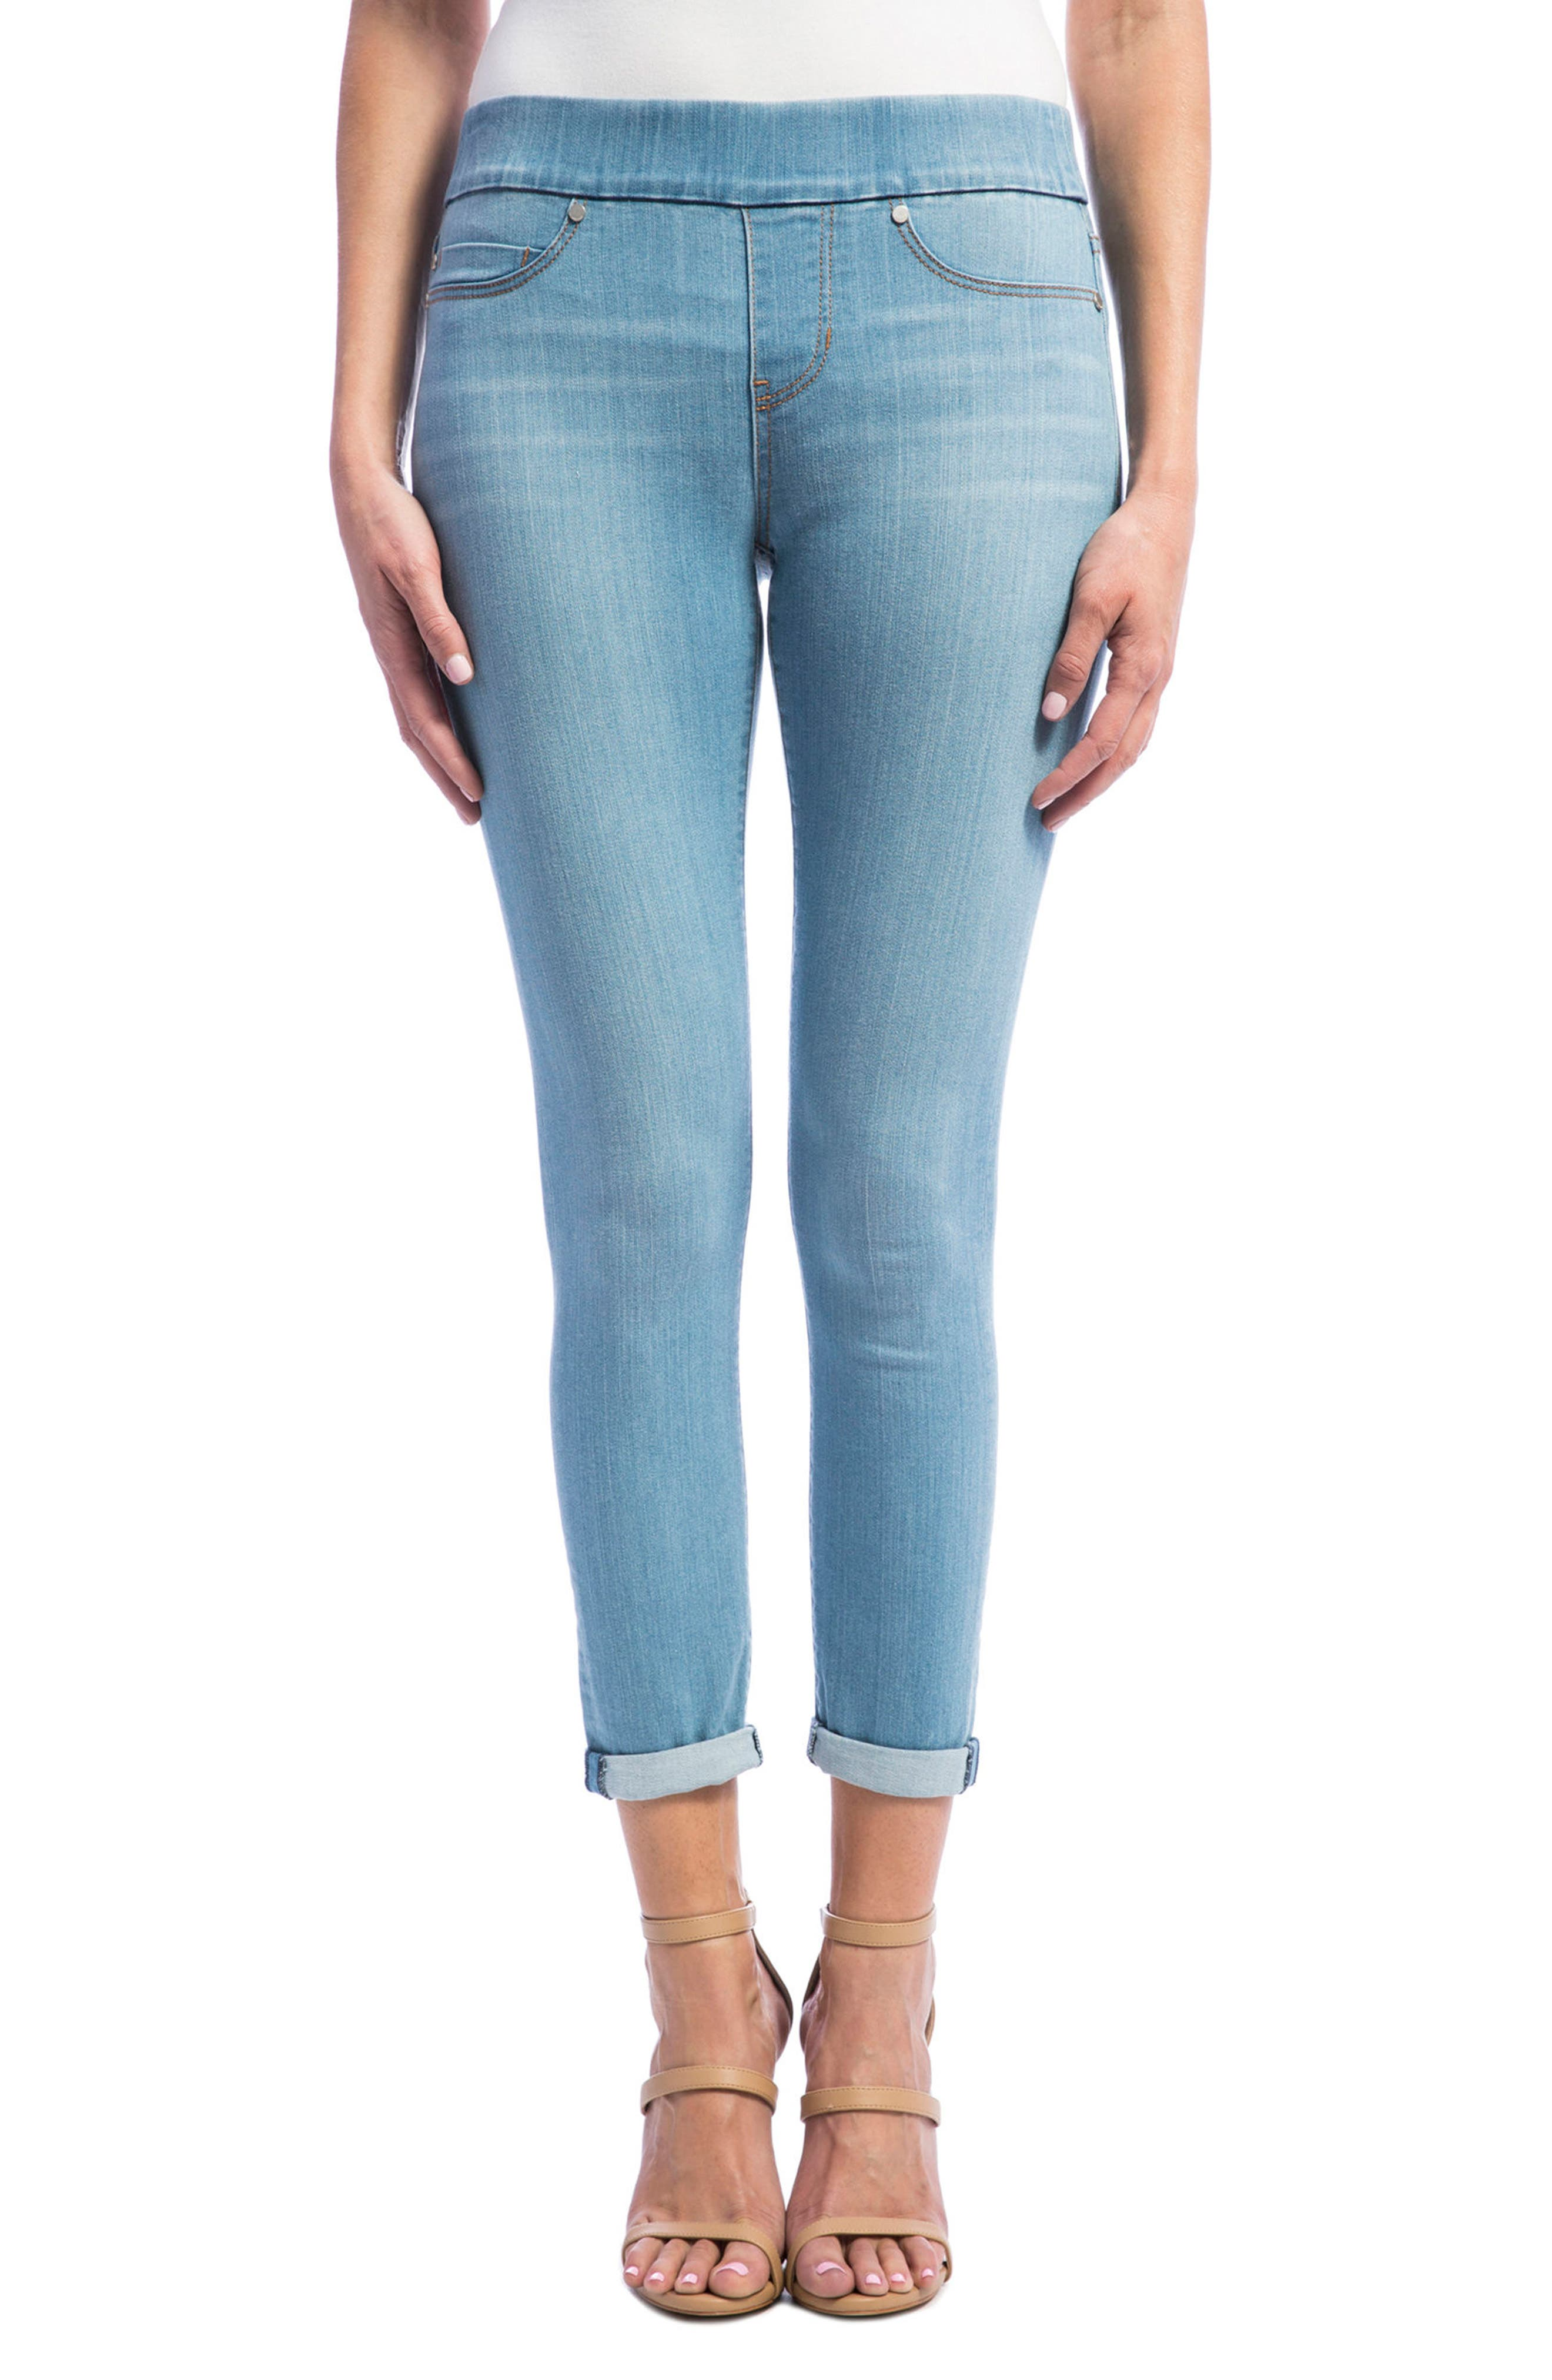 Liverpool Jeans Company Sienna Pull-On Stretch Capri Skinny Jeans (Normandie Light)